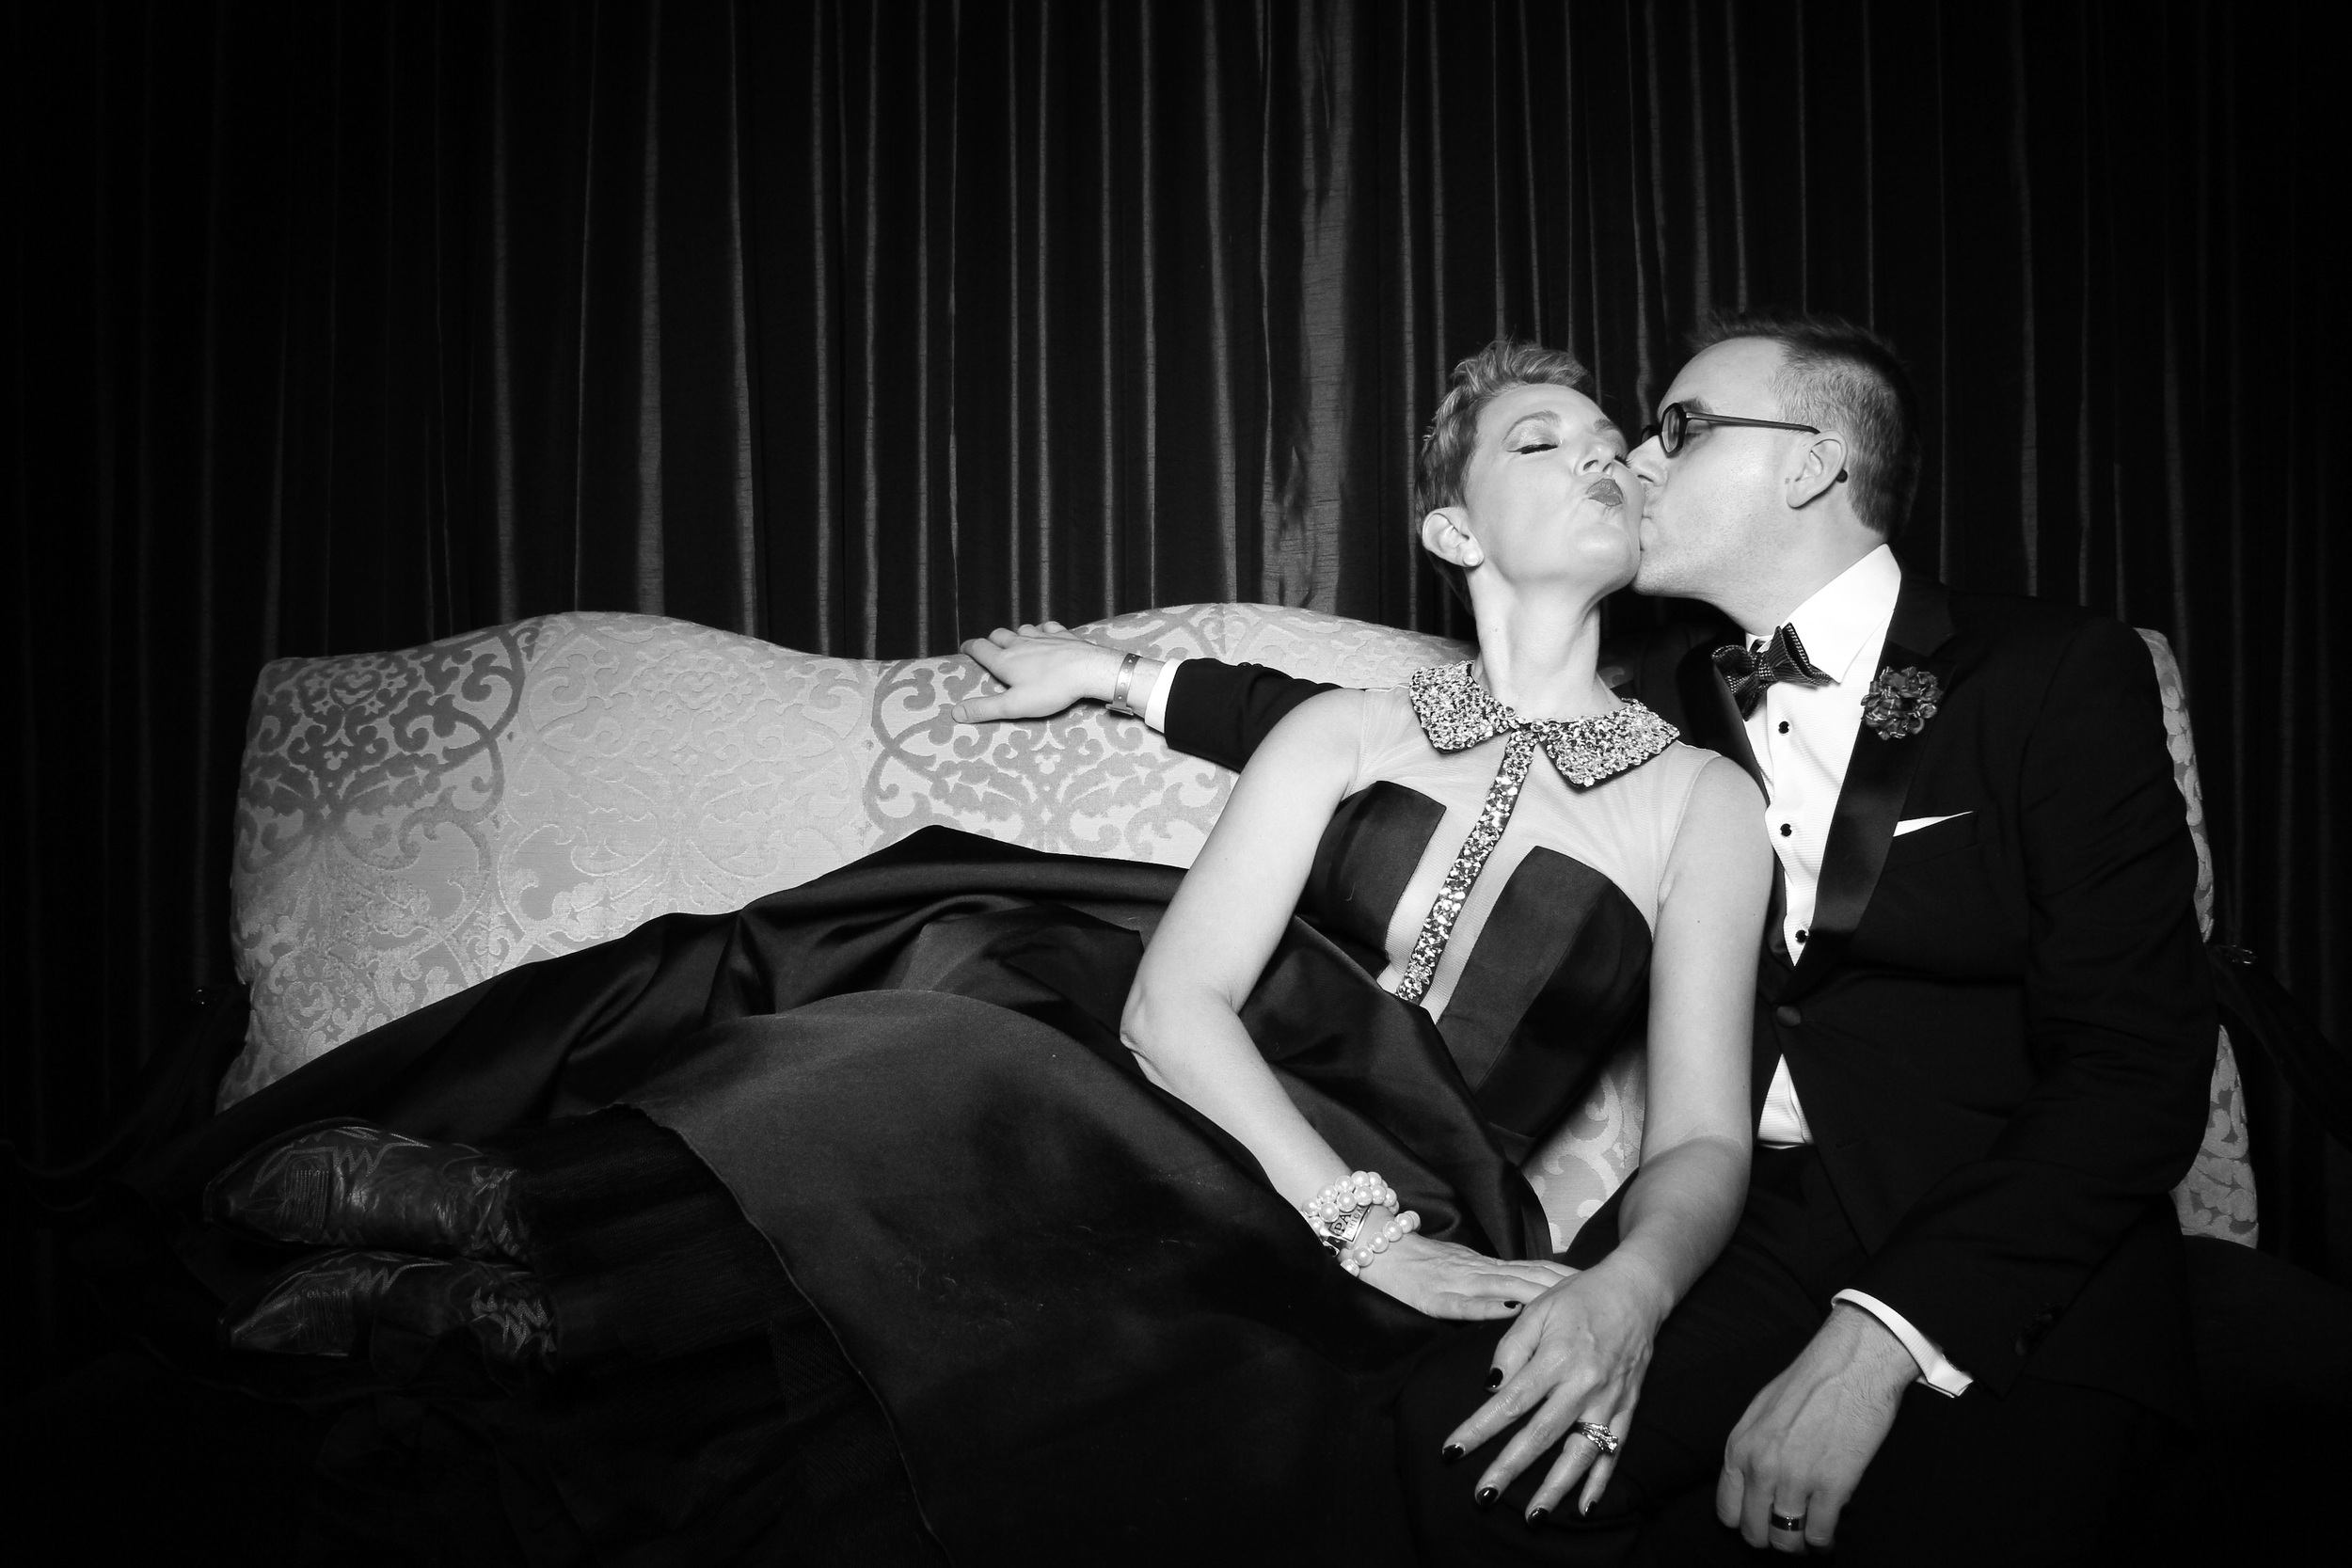 Fun couple having fun and relaxing with the photo booth at the Drake Hotel Chicago!